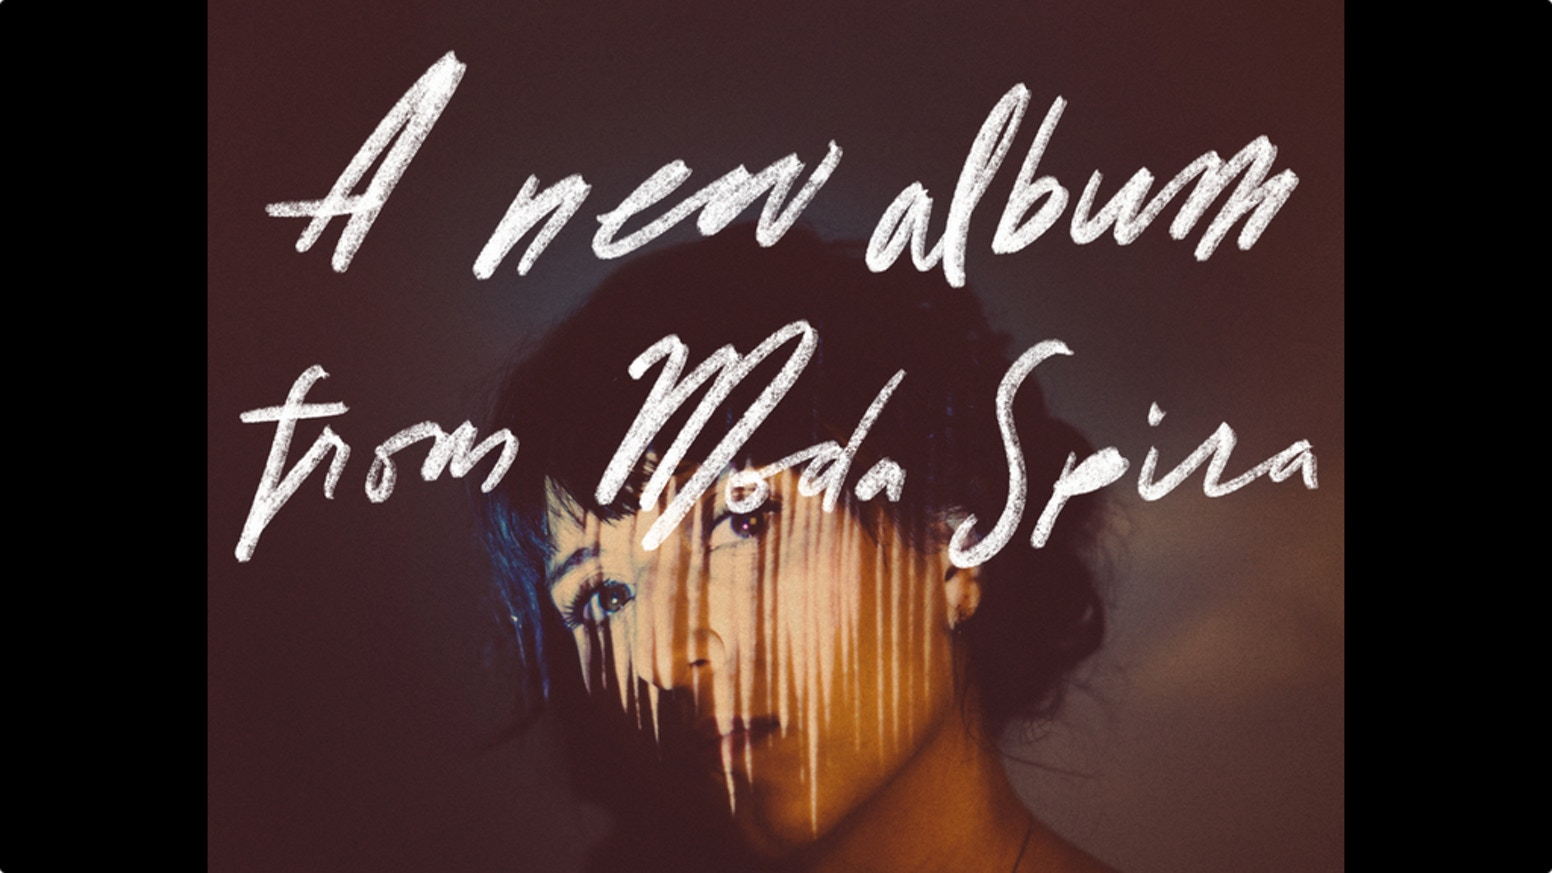 Moda Spira's new album, coming October 2018